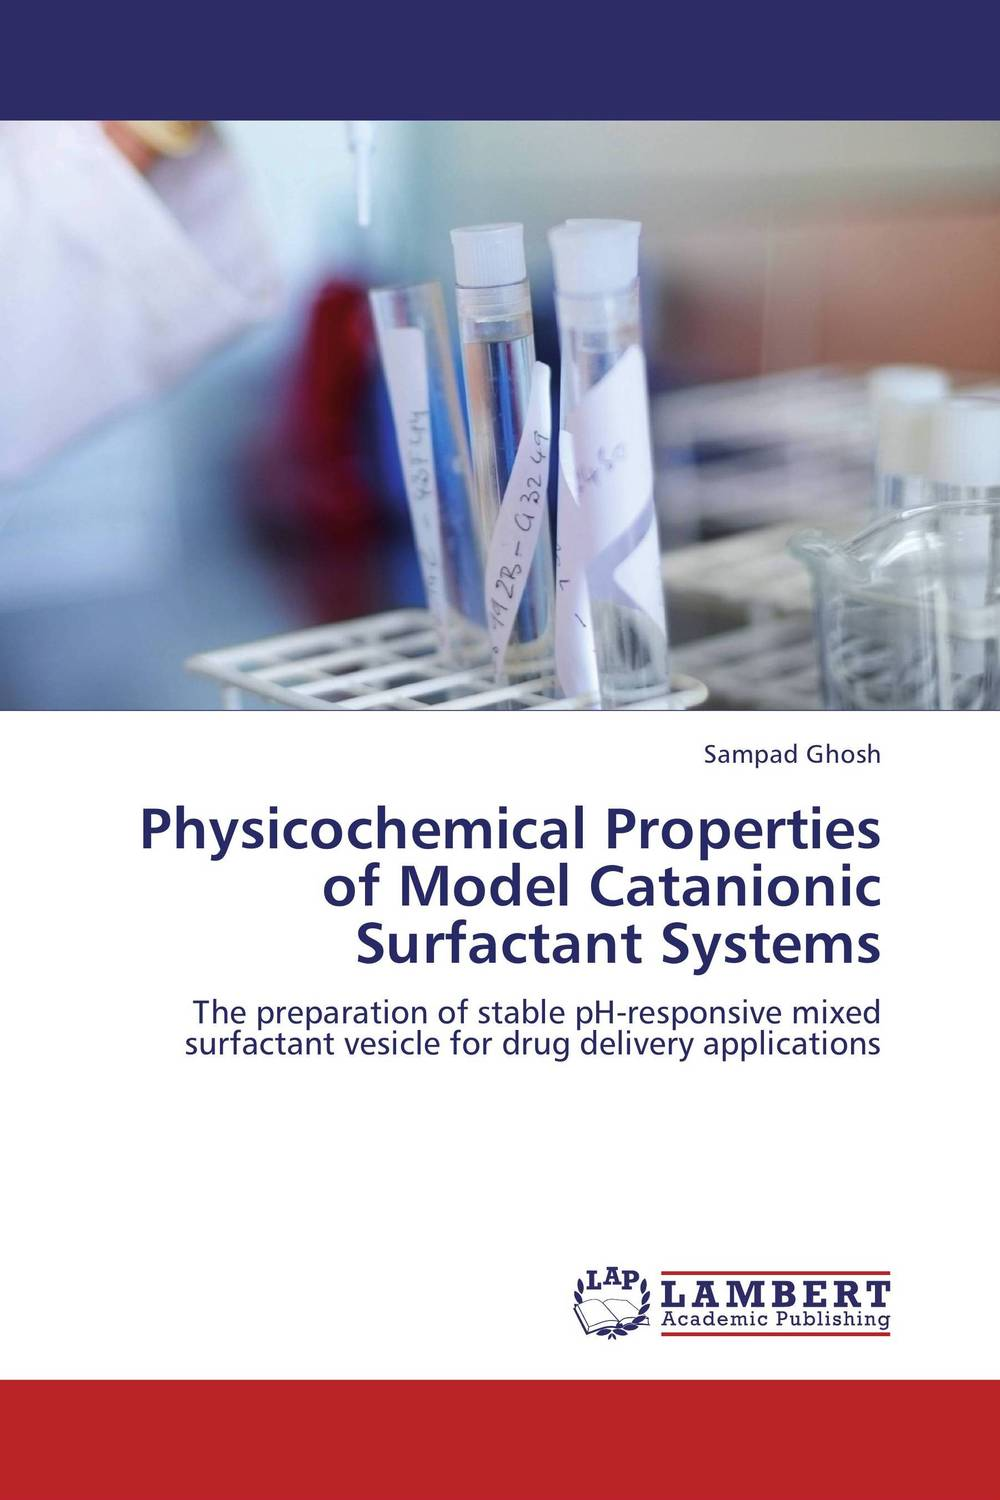 Physicochemical Properties of Model Catanionic Surfactant Systems